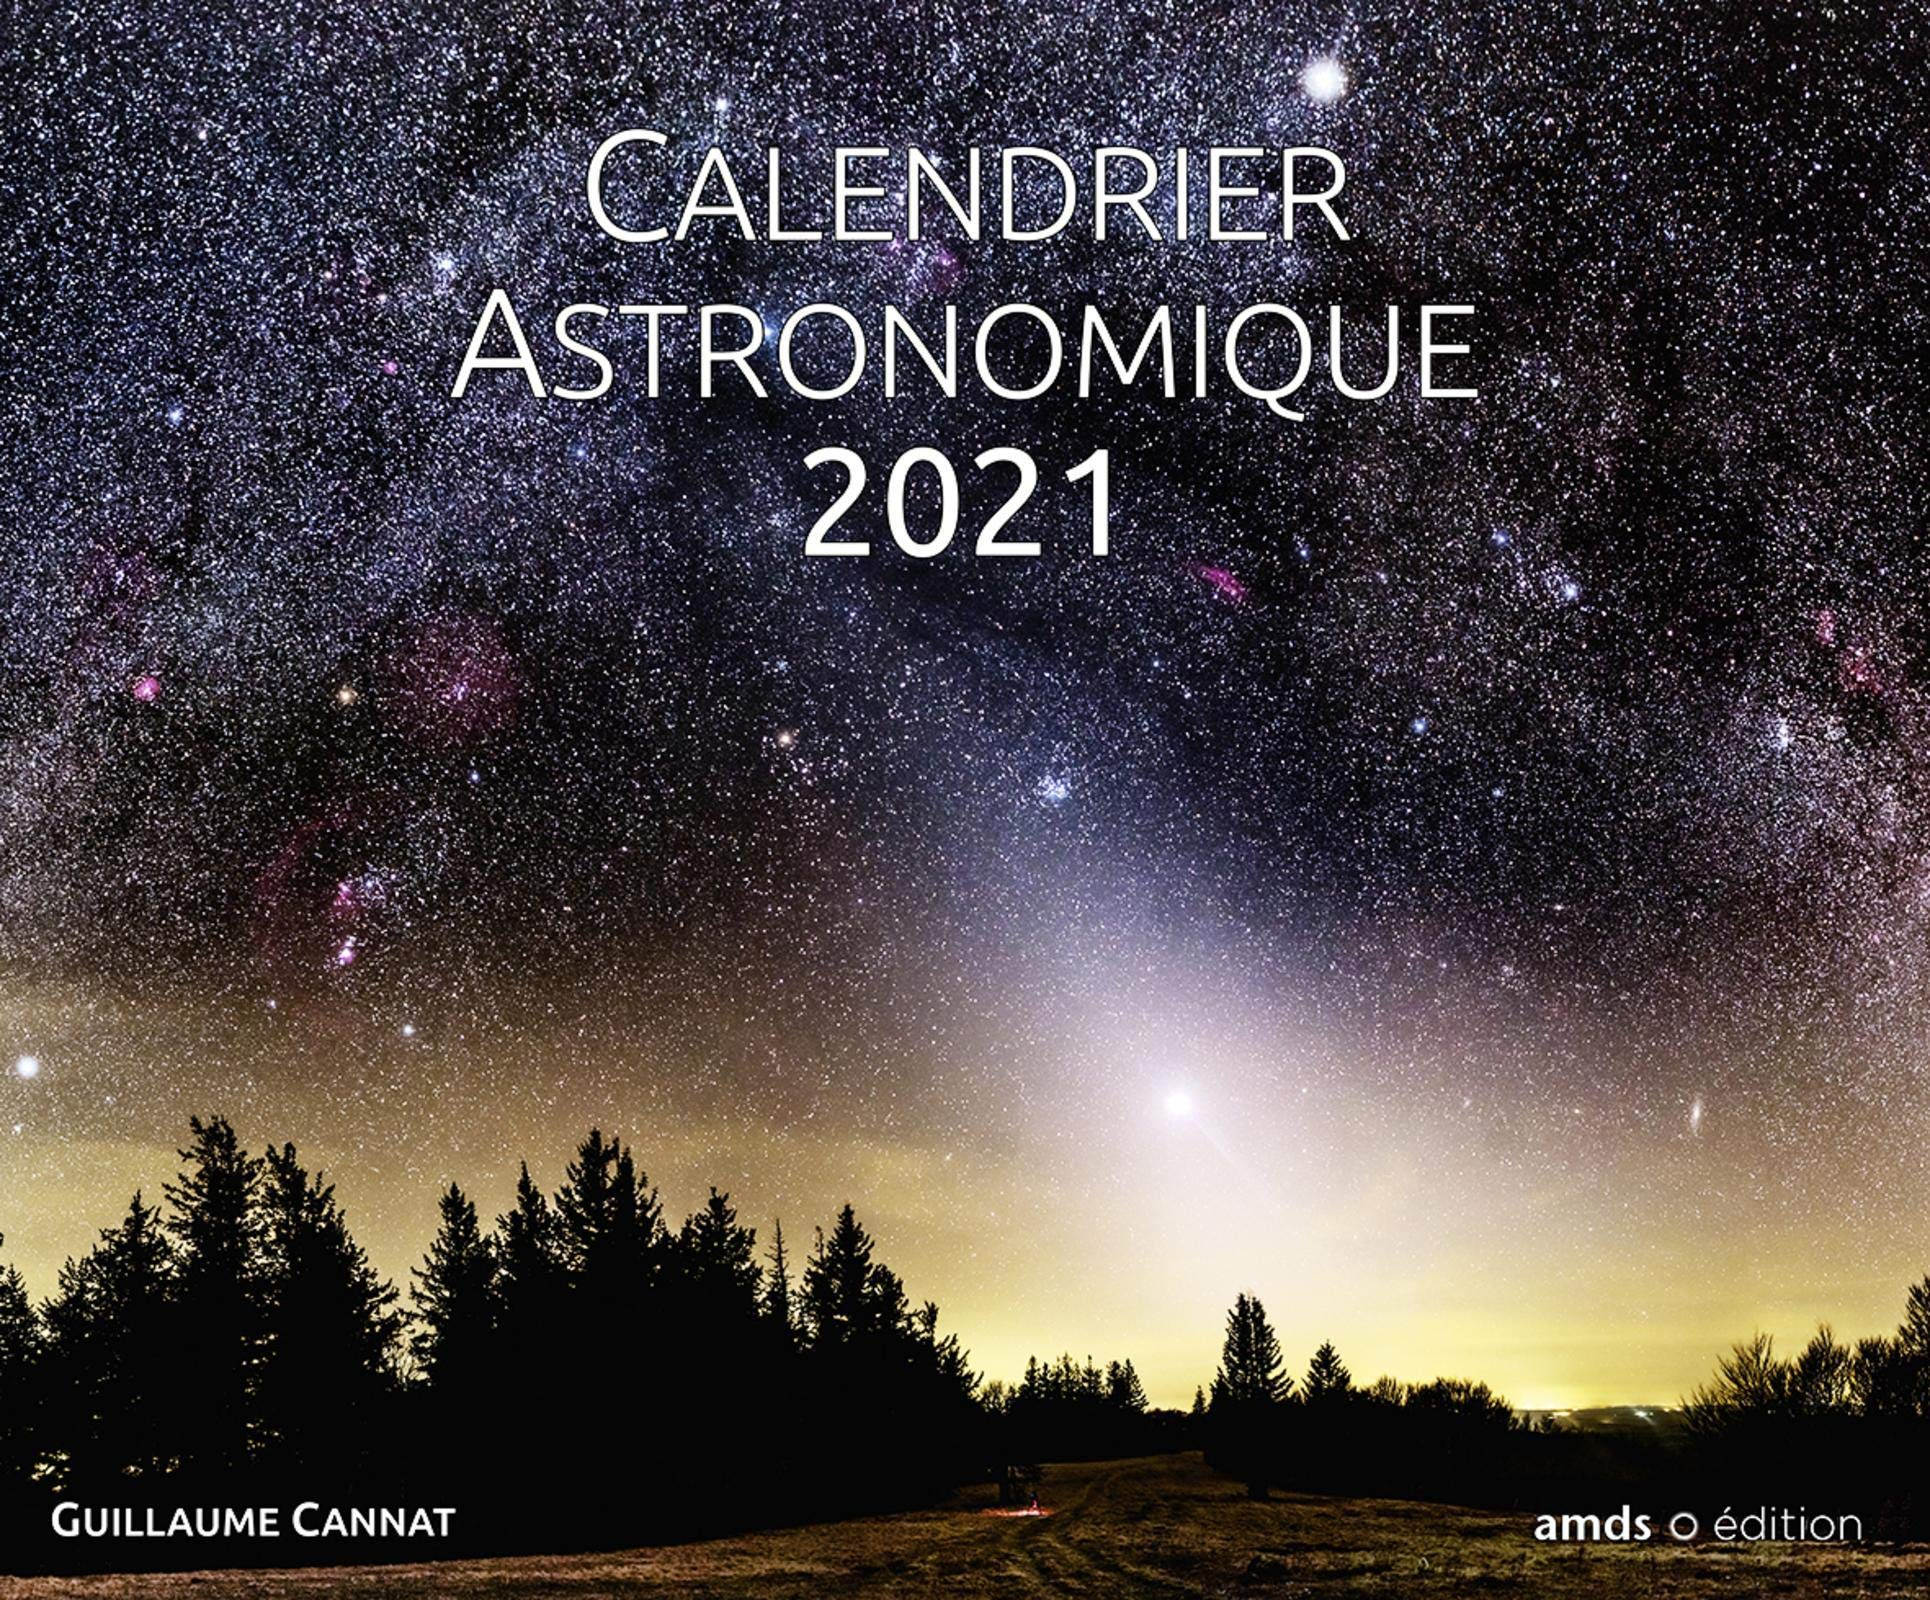 Calendrier Astronomique 2021 Calendrier astronomique 2021 (French Edition): Cannat, Guillaume